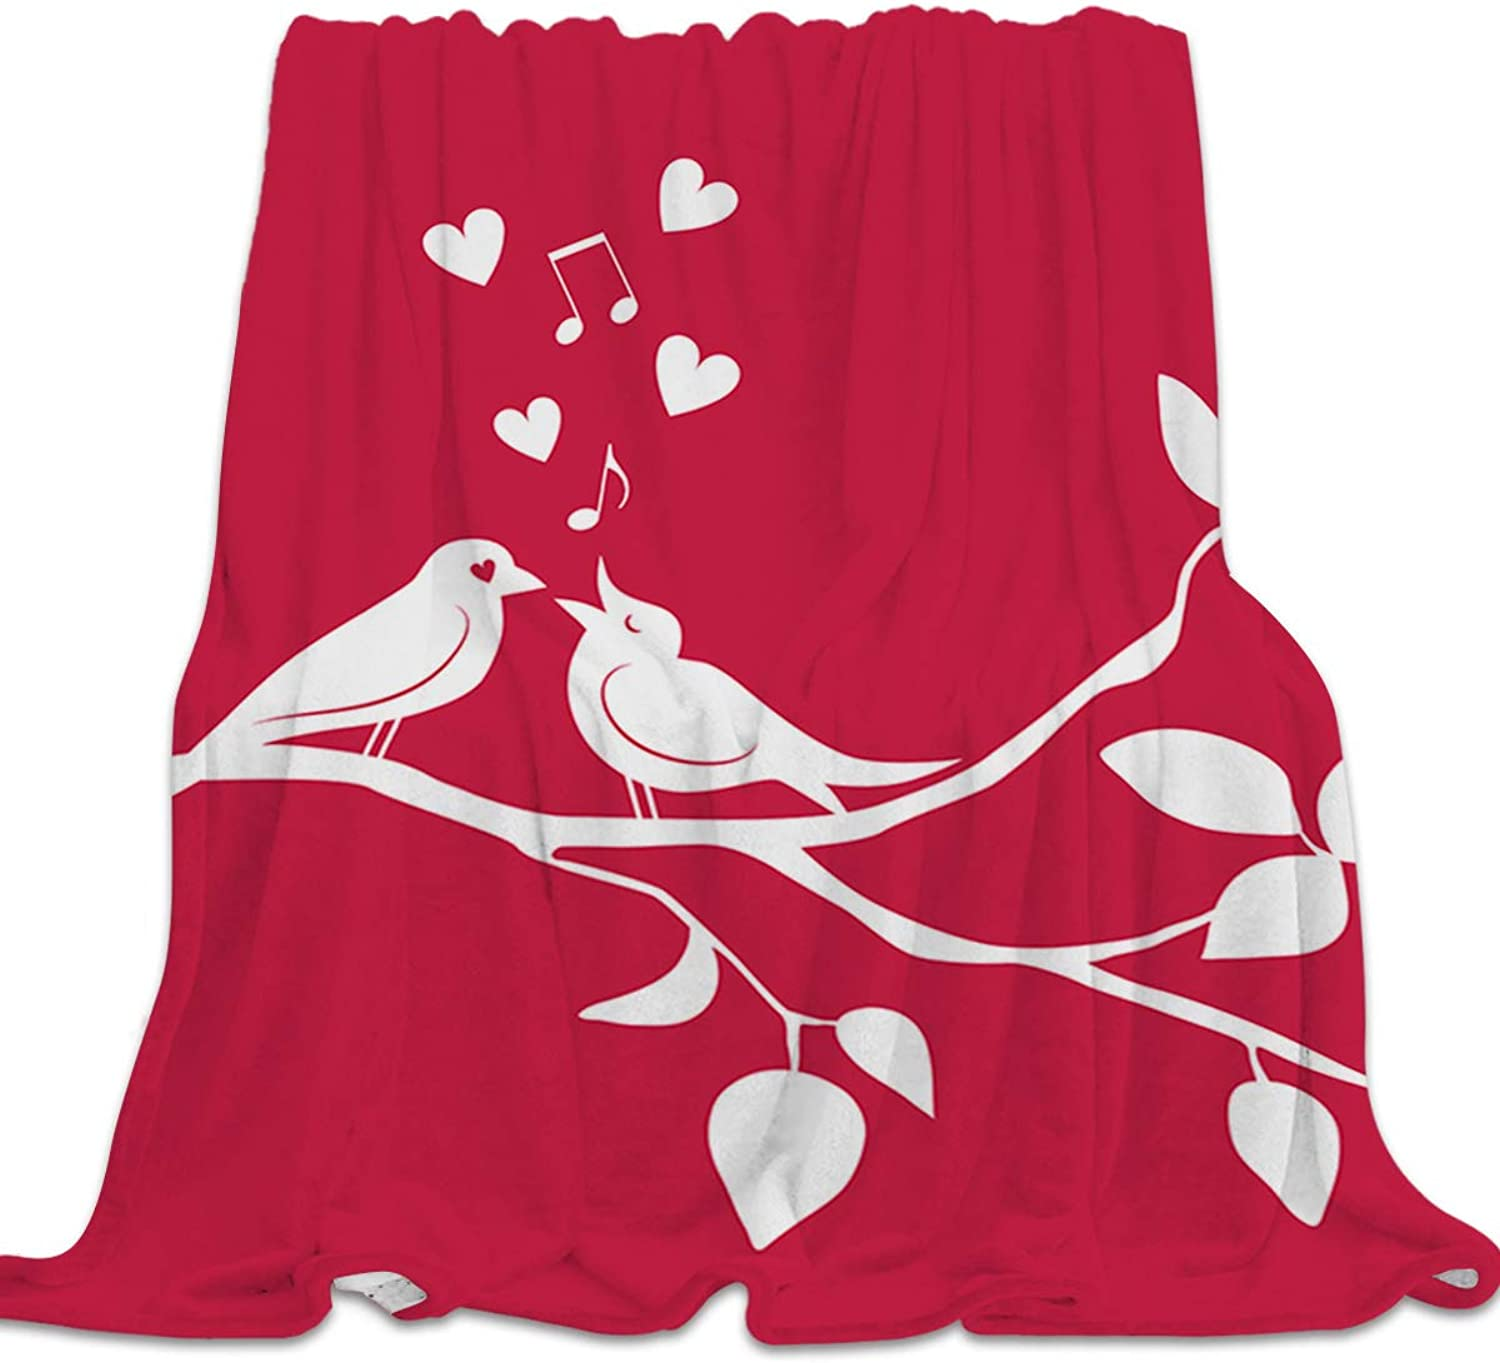 YEHO Art Gallery Soft Flannel Fleece Bed Blanket ThrowBlankets for Girls Boys,The Shadow of Bird Couple Red Pattern,Lightweight Warm Blankets for Bedroom Living Room Sofa Couch,49x59inch